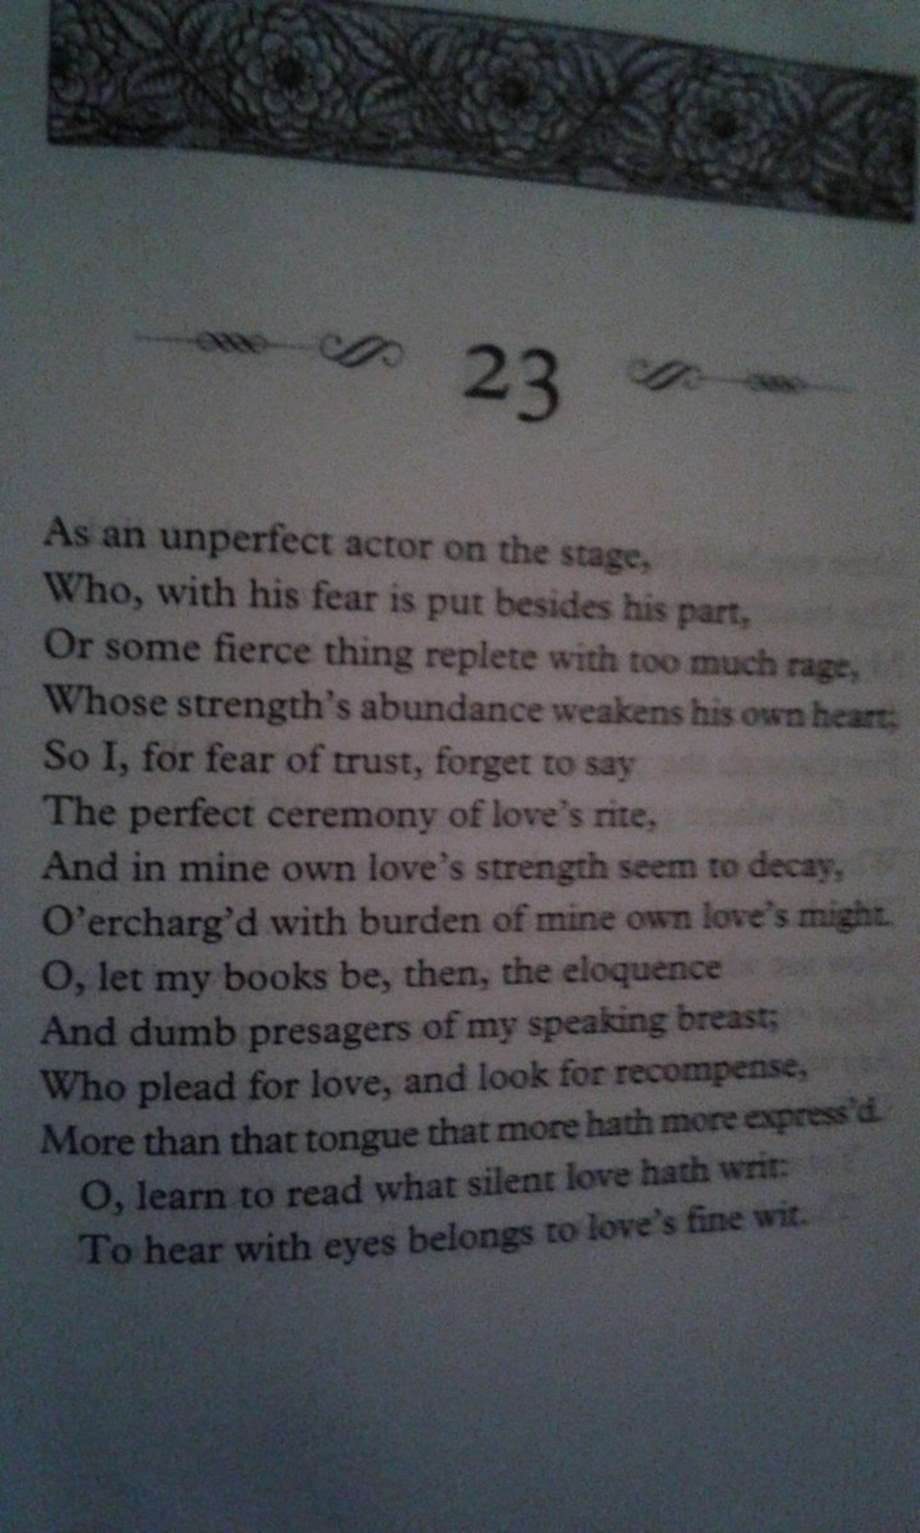 Poetic AI system pens Shakespeare-like sonnets